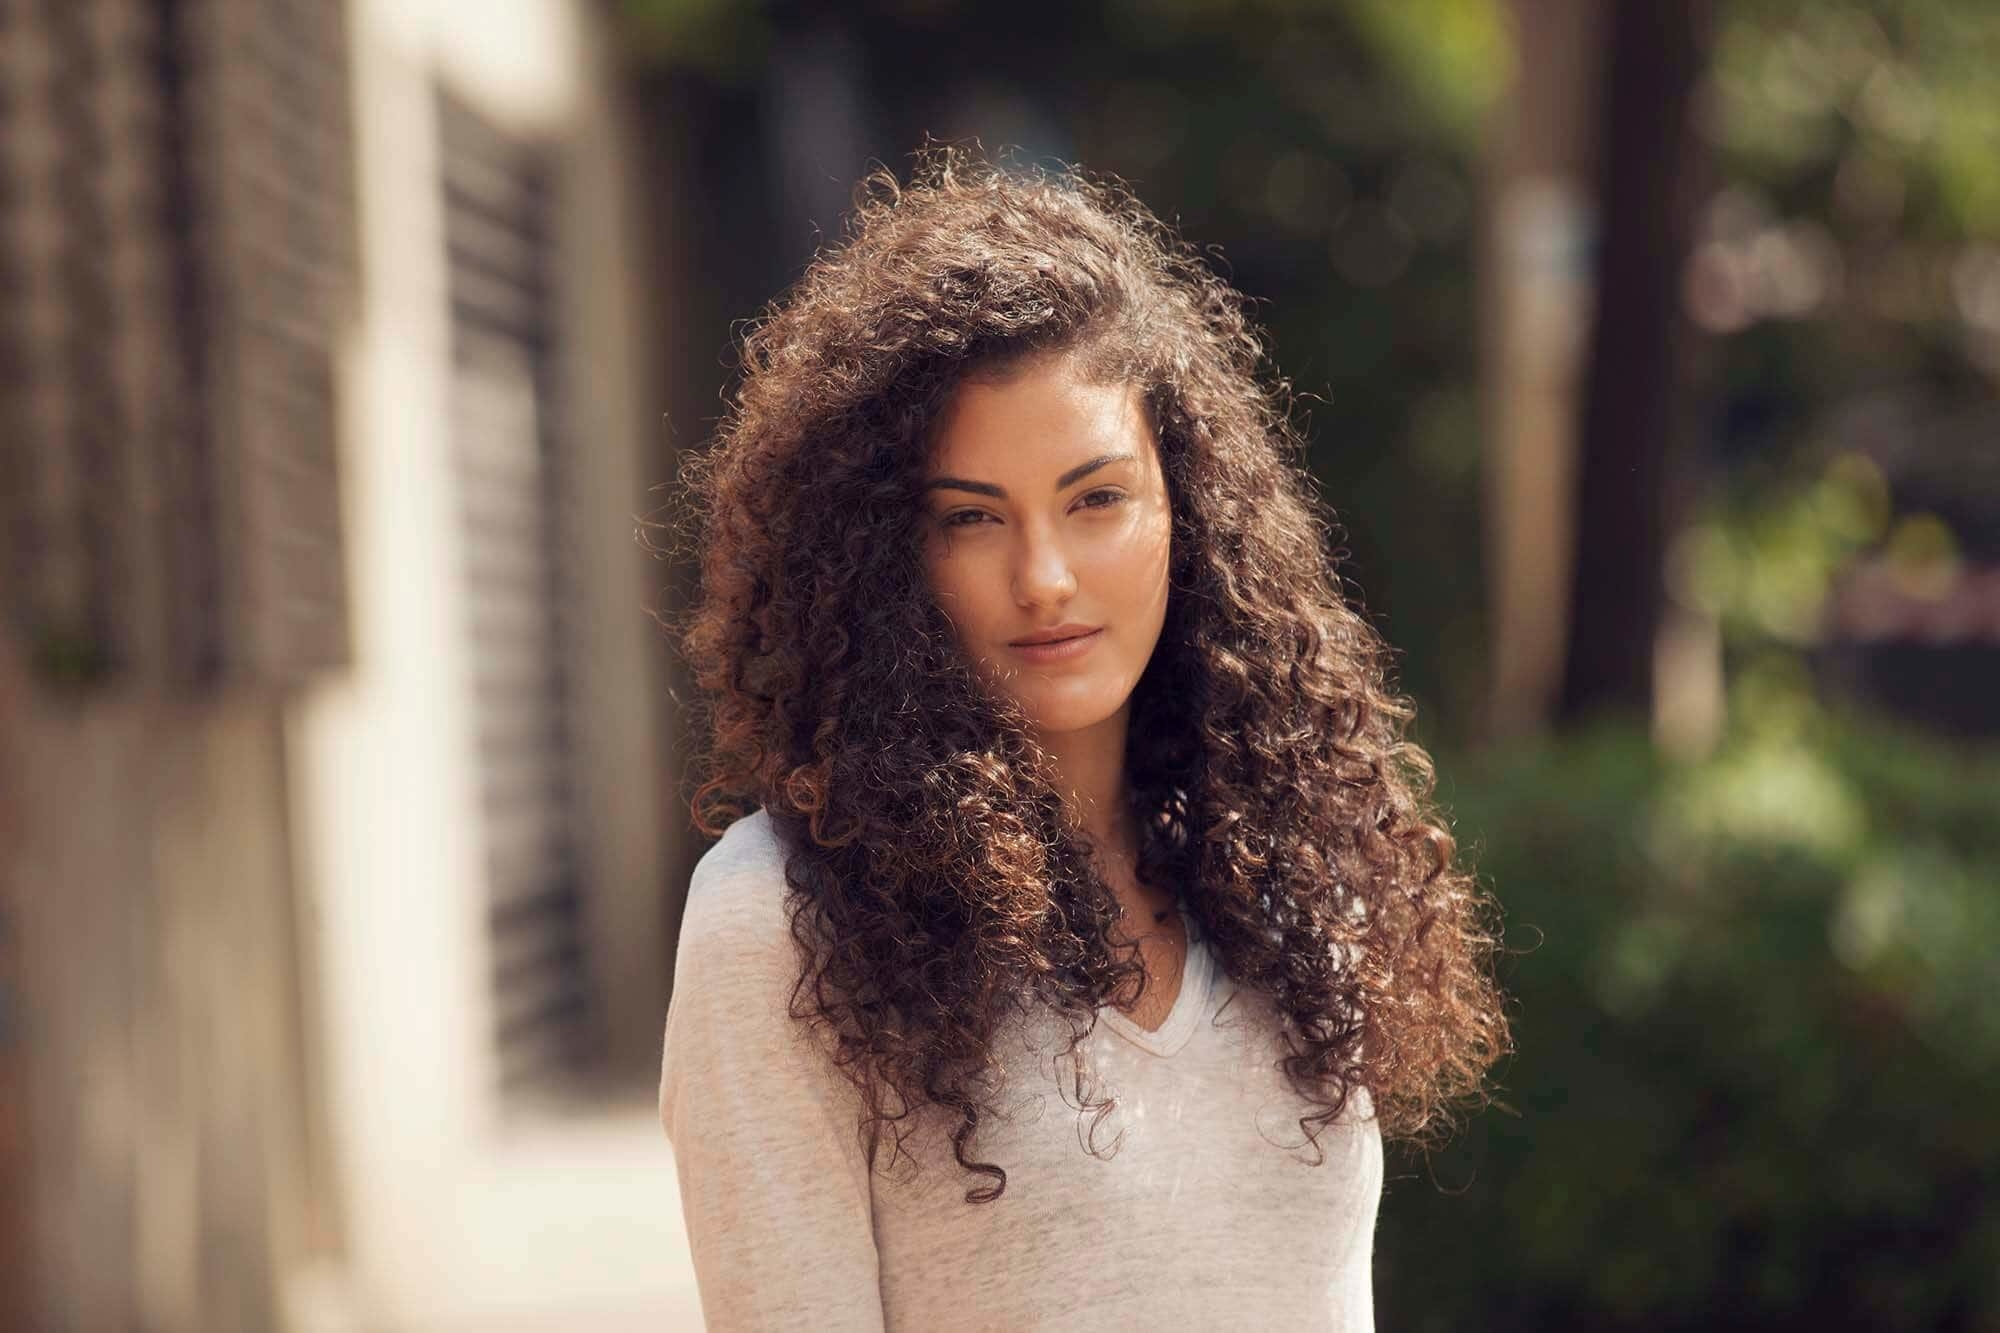 Hairstyles For Thick Curly Hair Best Curly Hairstyles